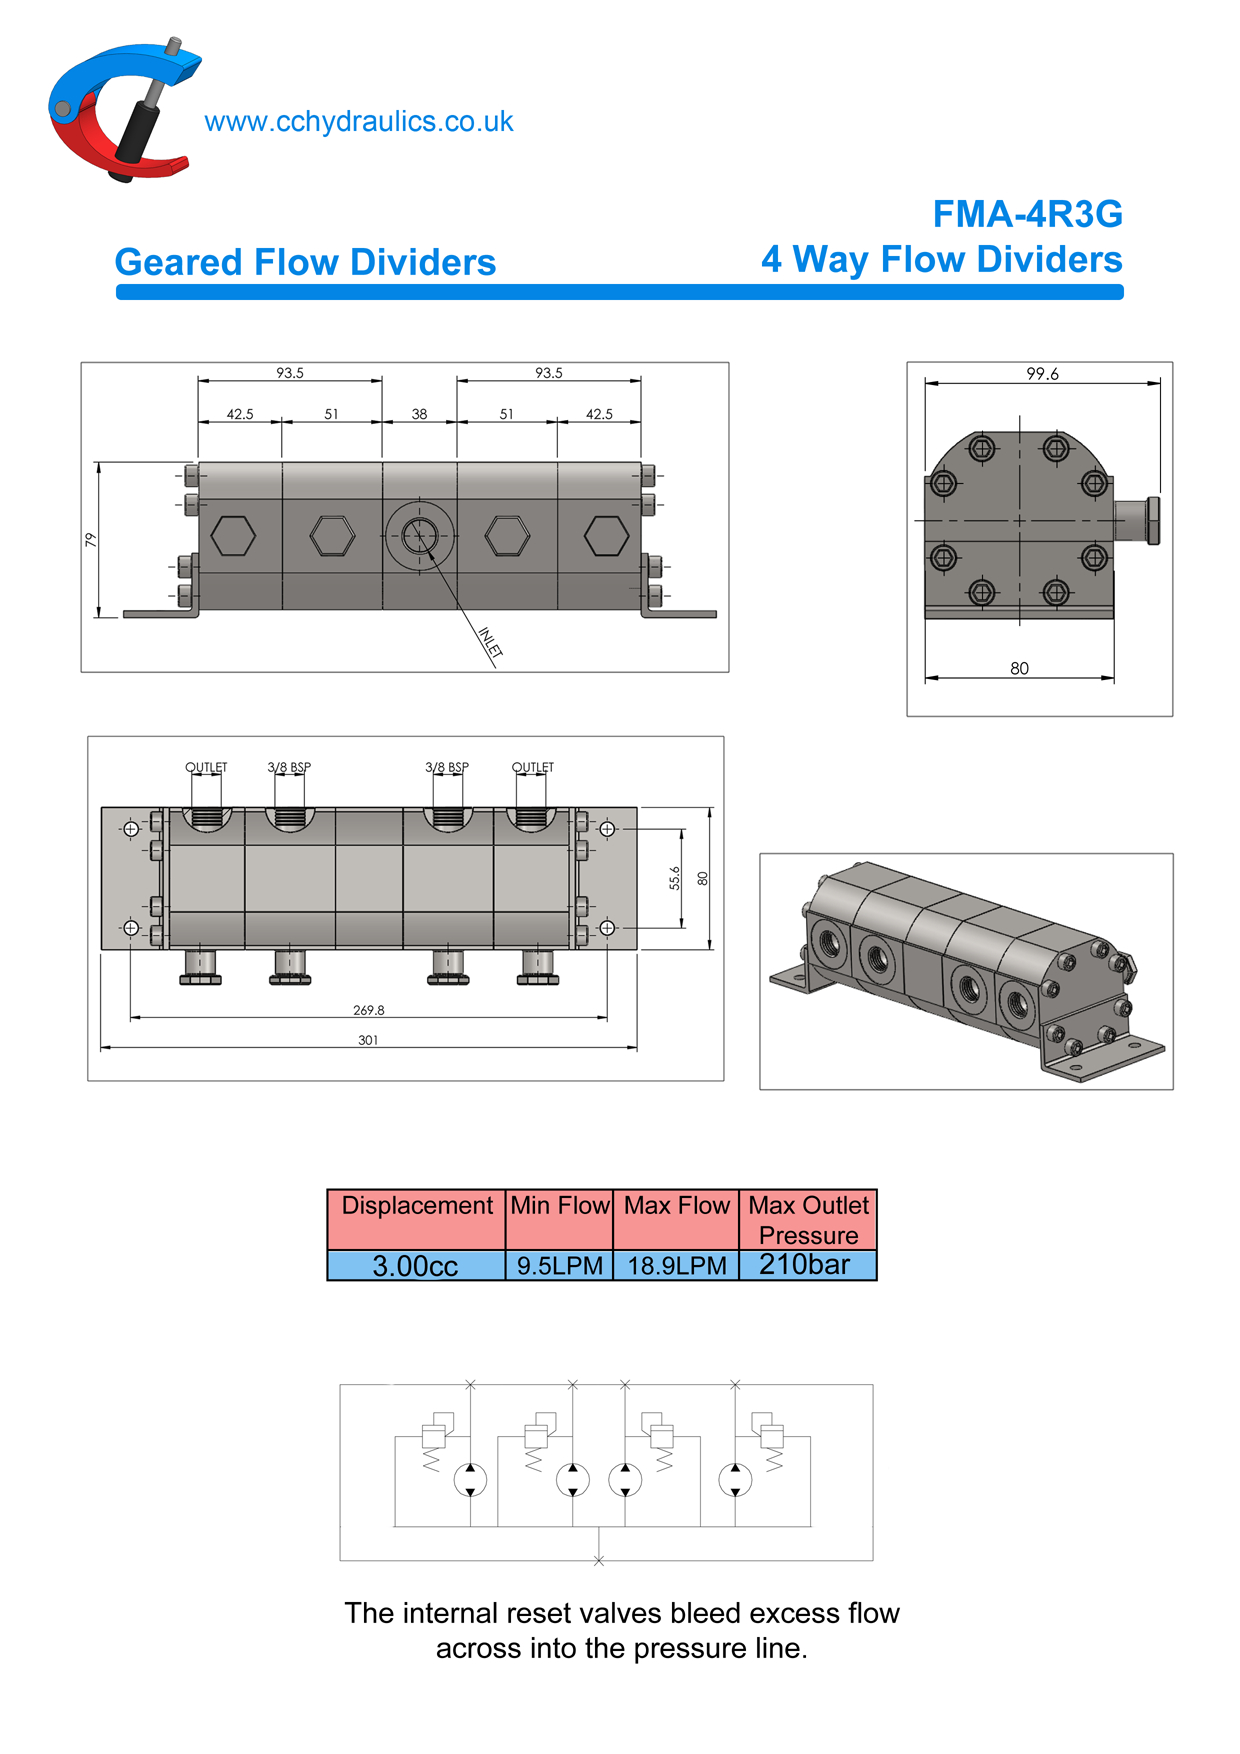 applications manual for the proportional divider